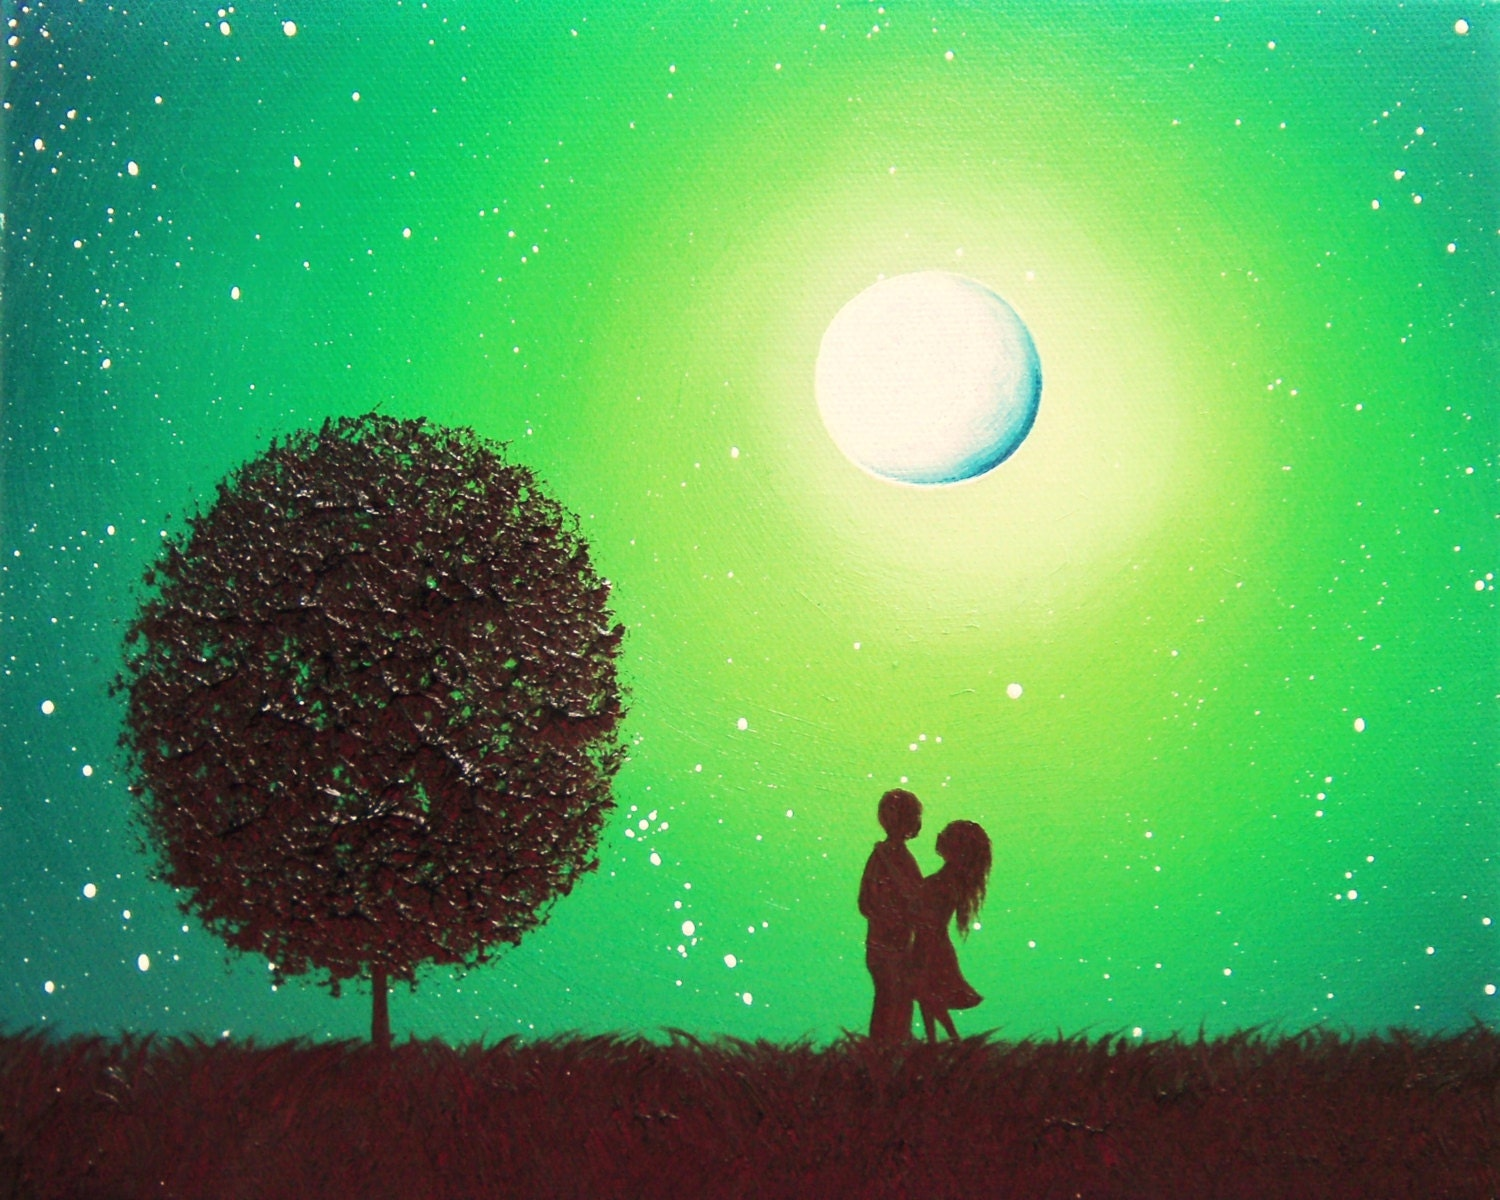 Romantic Couple Art Print In Love Whimsical Silhouette